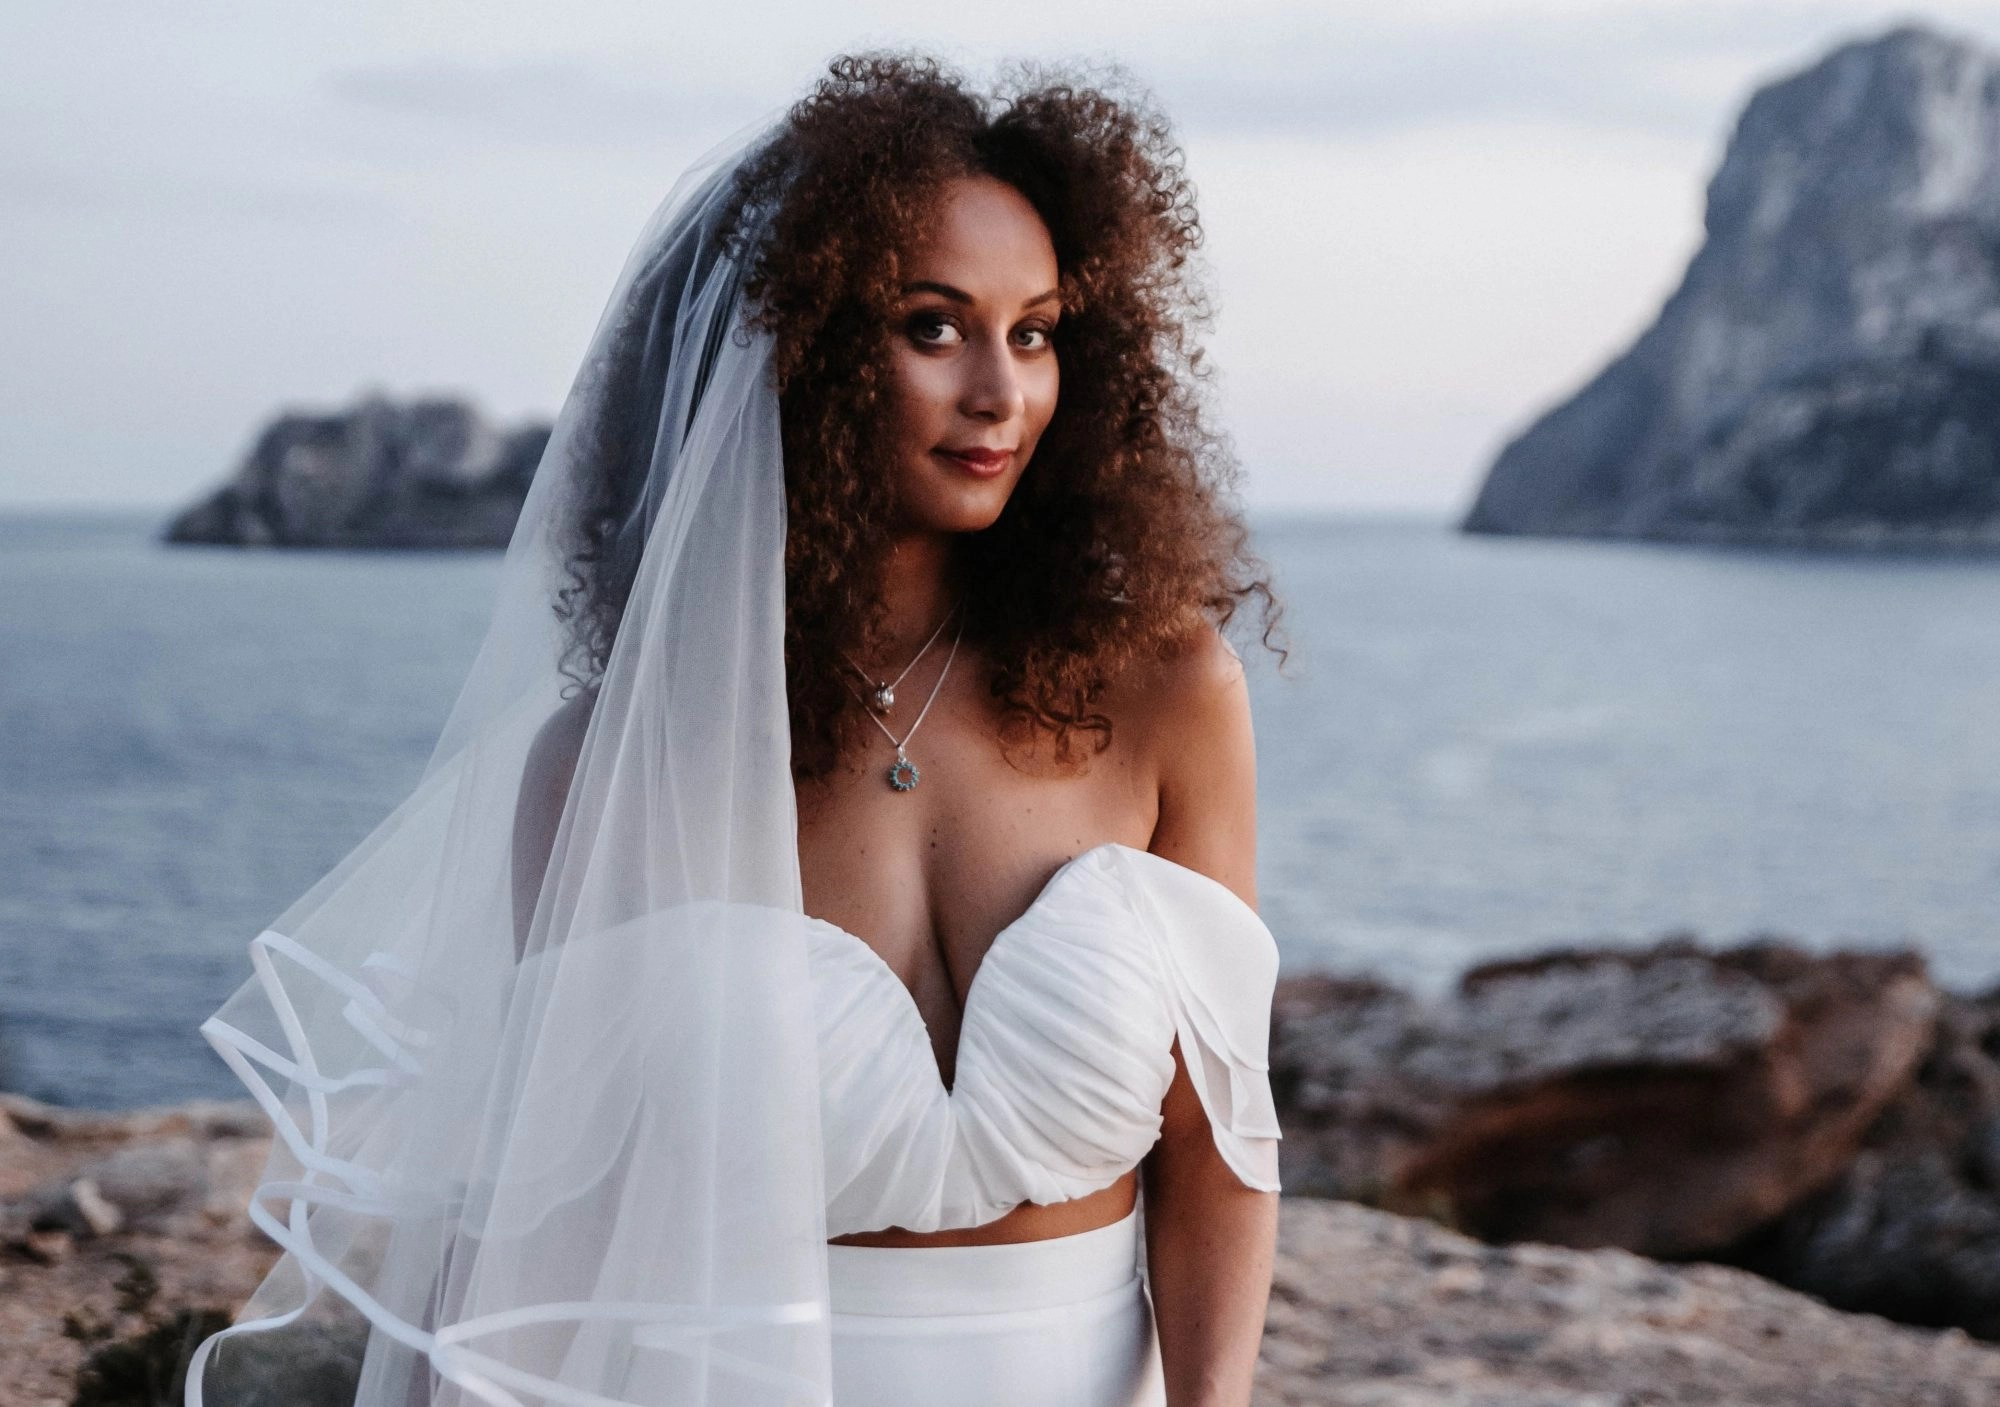 Styled Shoot in Ibiza featured imaged of a bride in a long veil with hair down